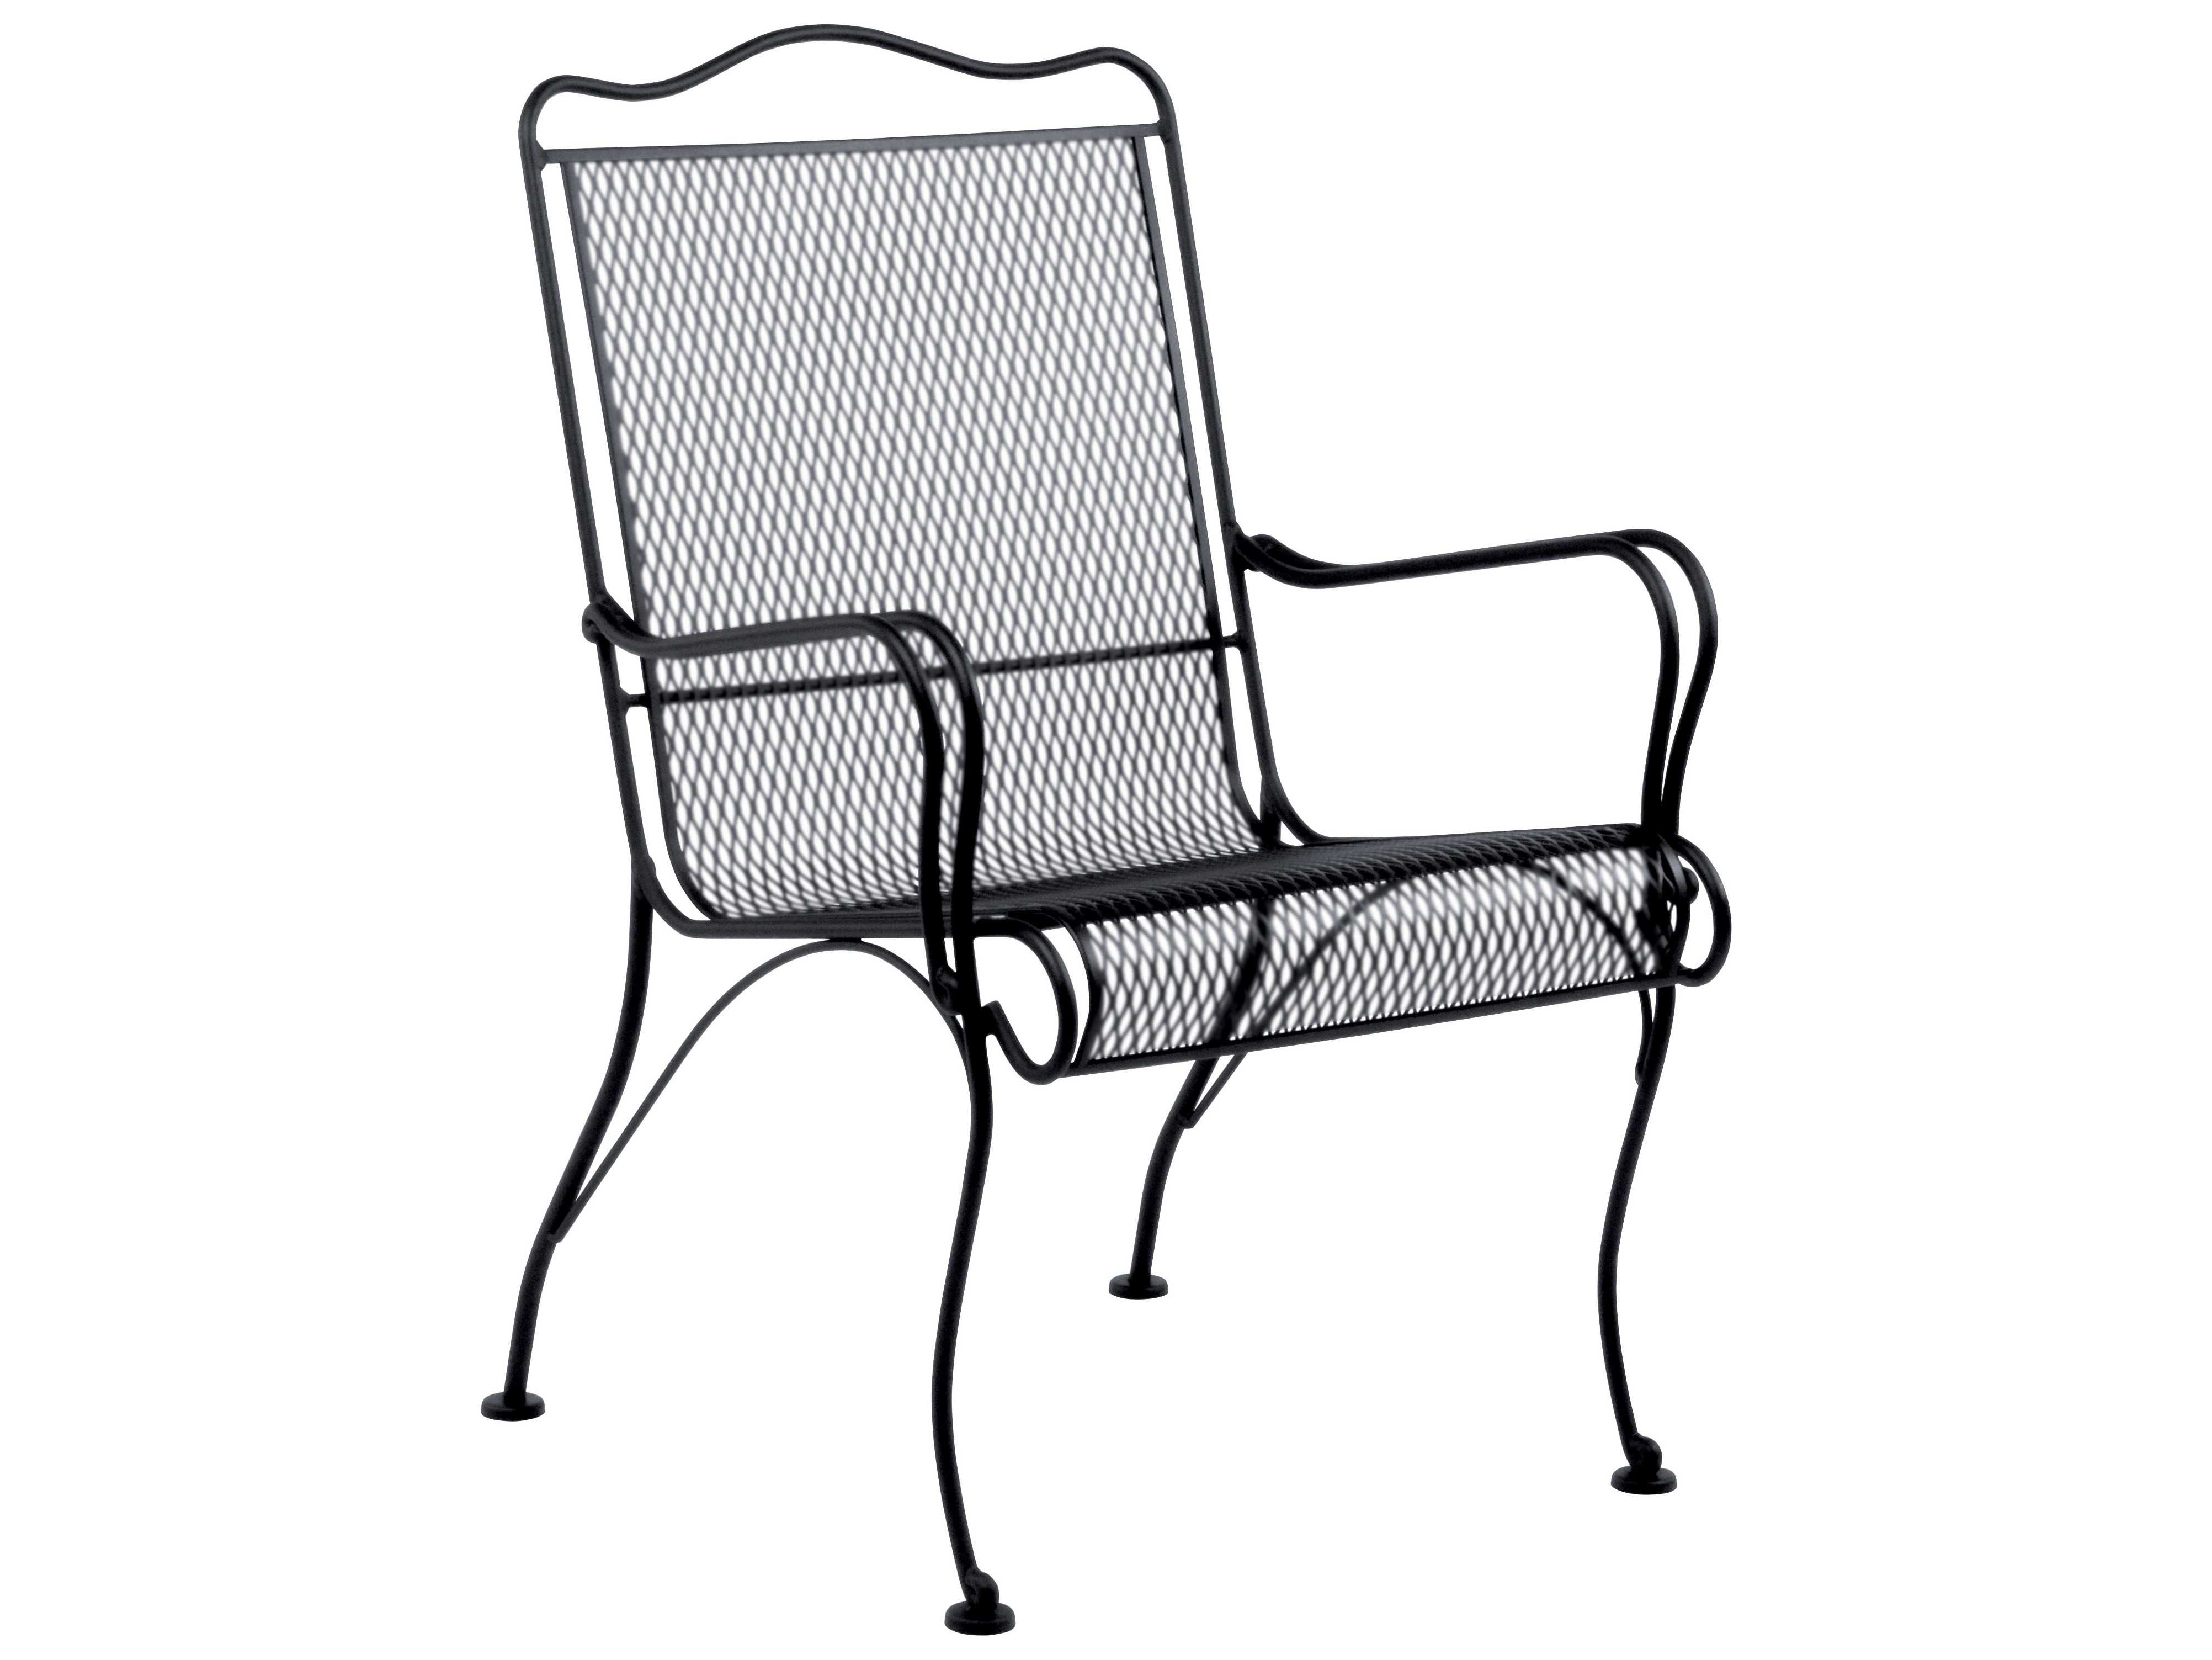 Mesh Patio Chairs Woodard Tucson Wrought Iron High Back Lounge Chair 1g0006